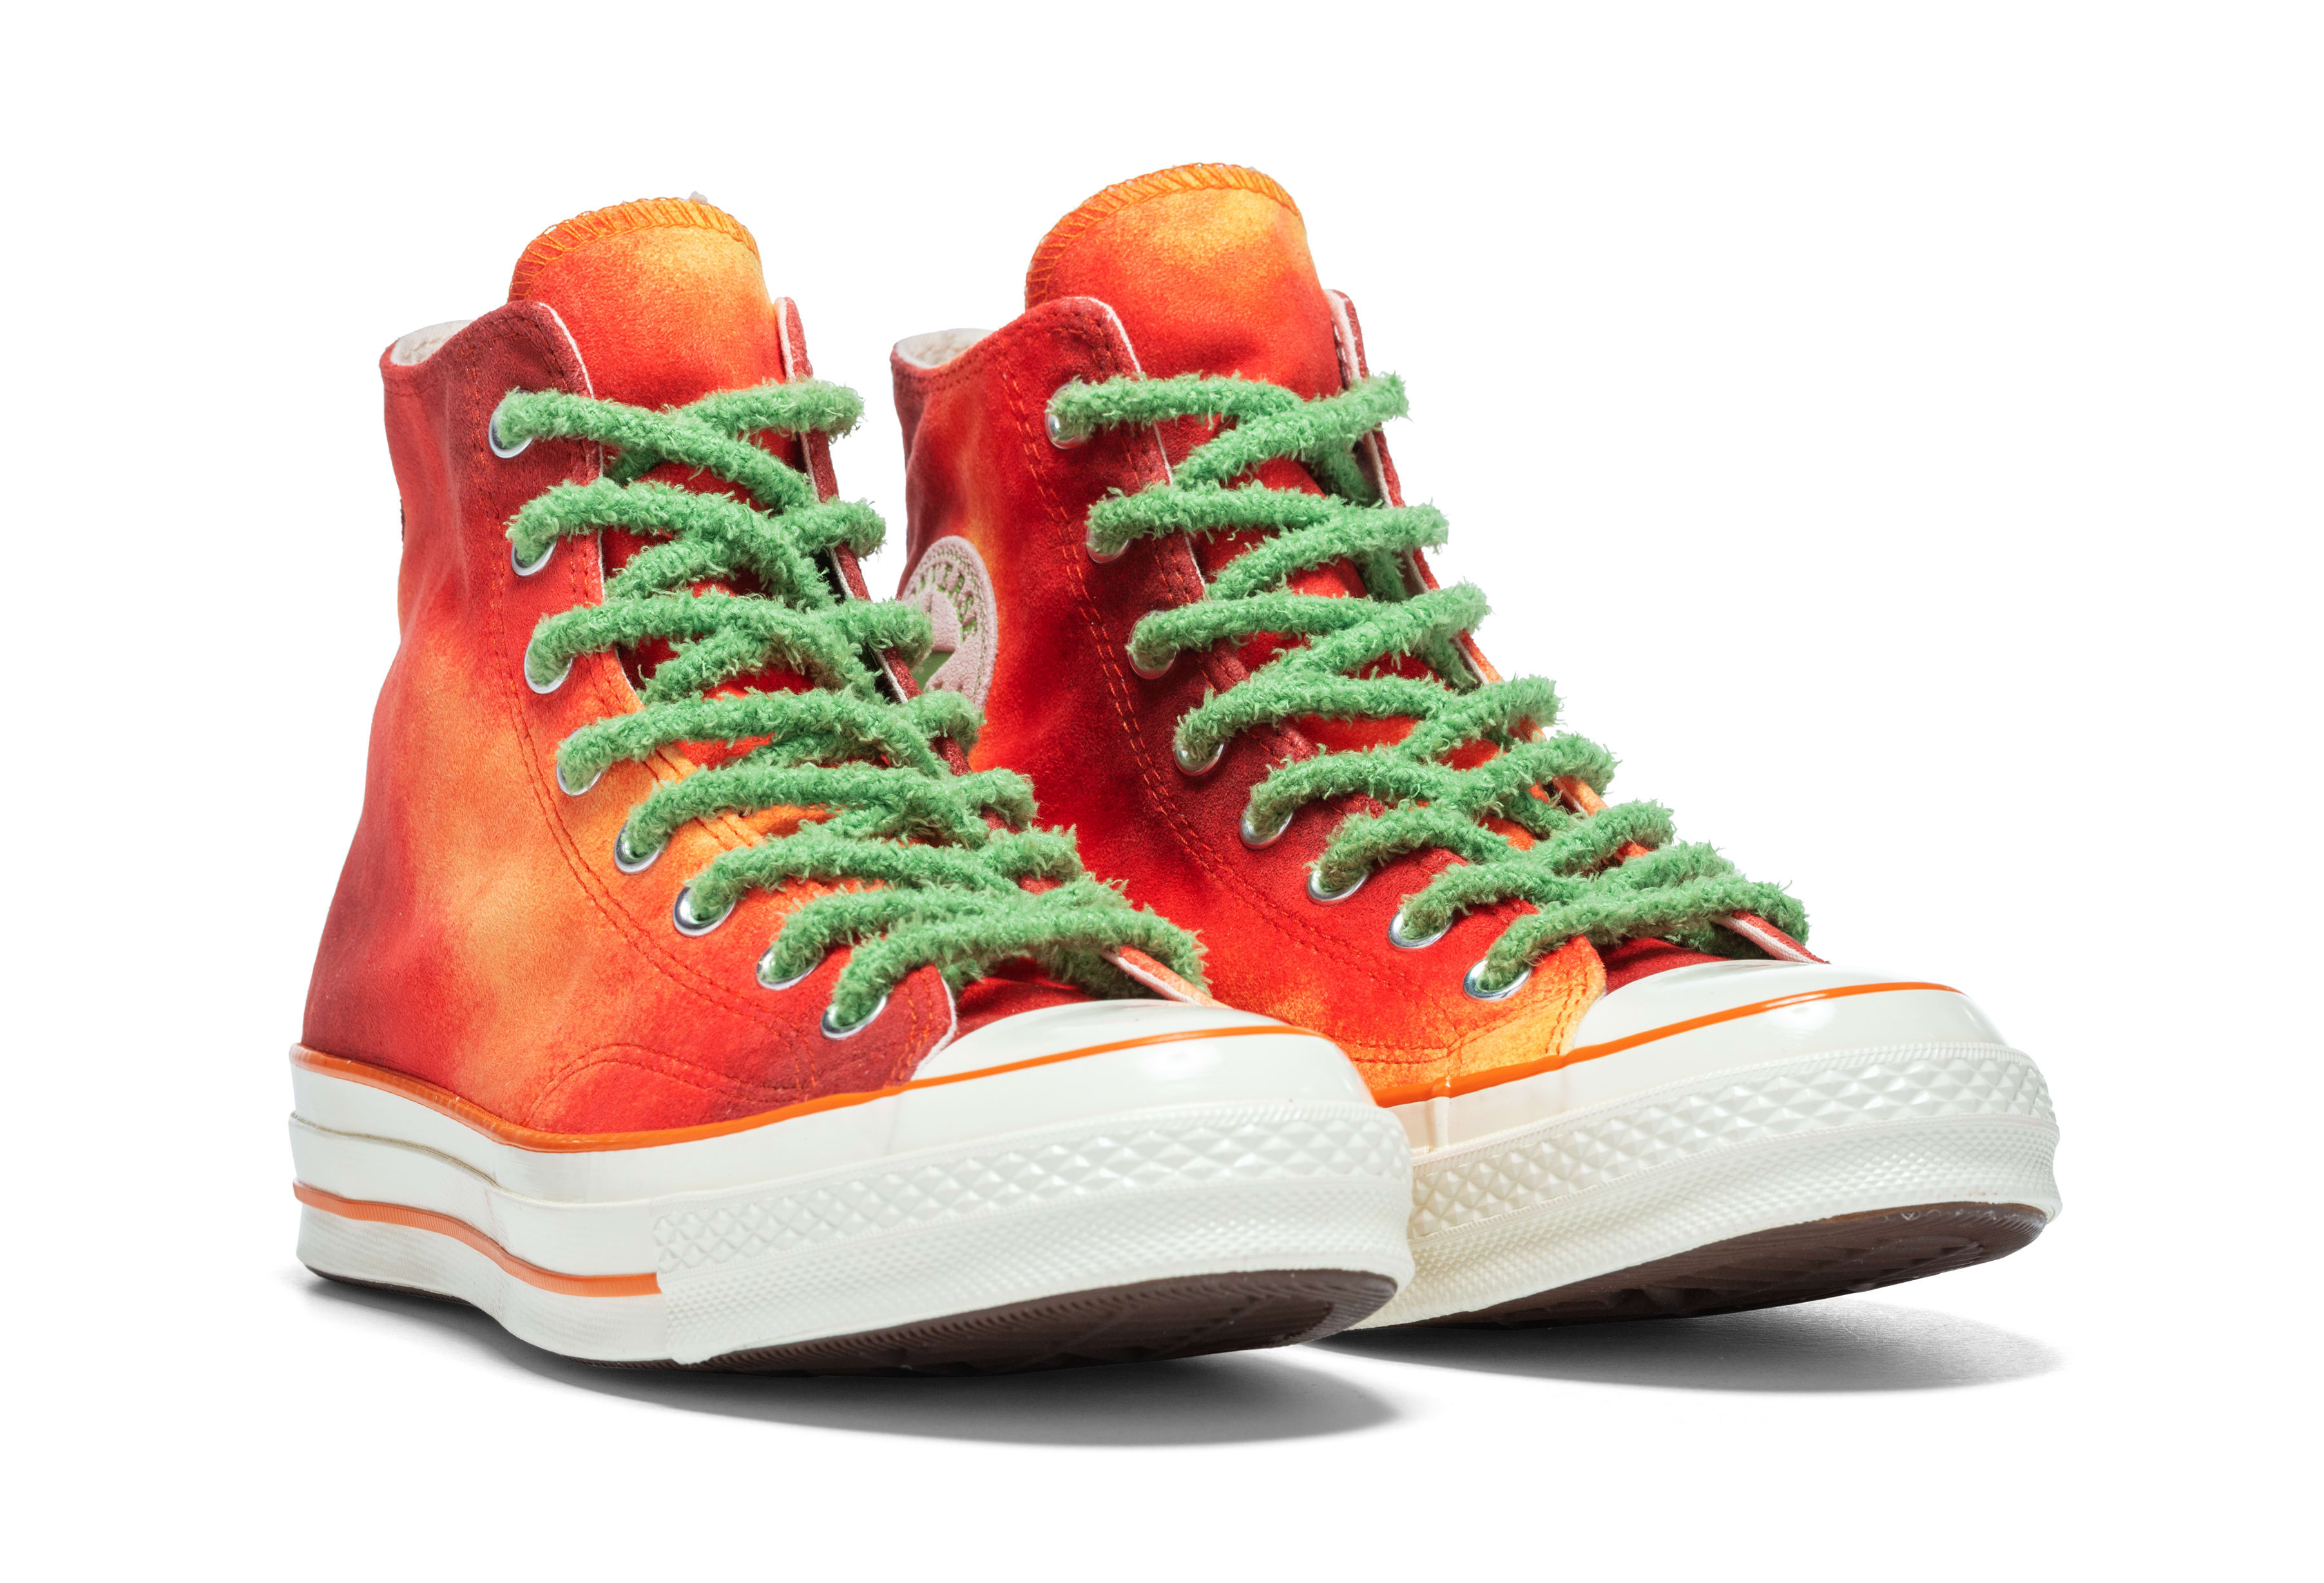 Concepts x Converse Chuck 70 'Southern Flame' Pair